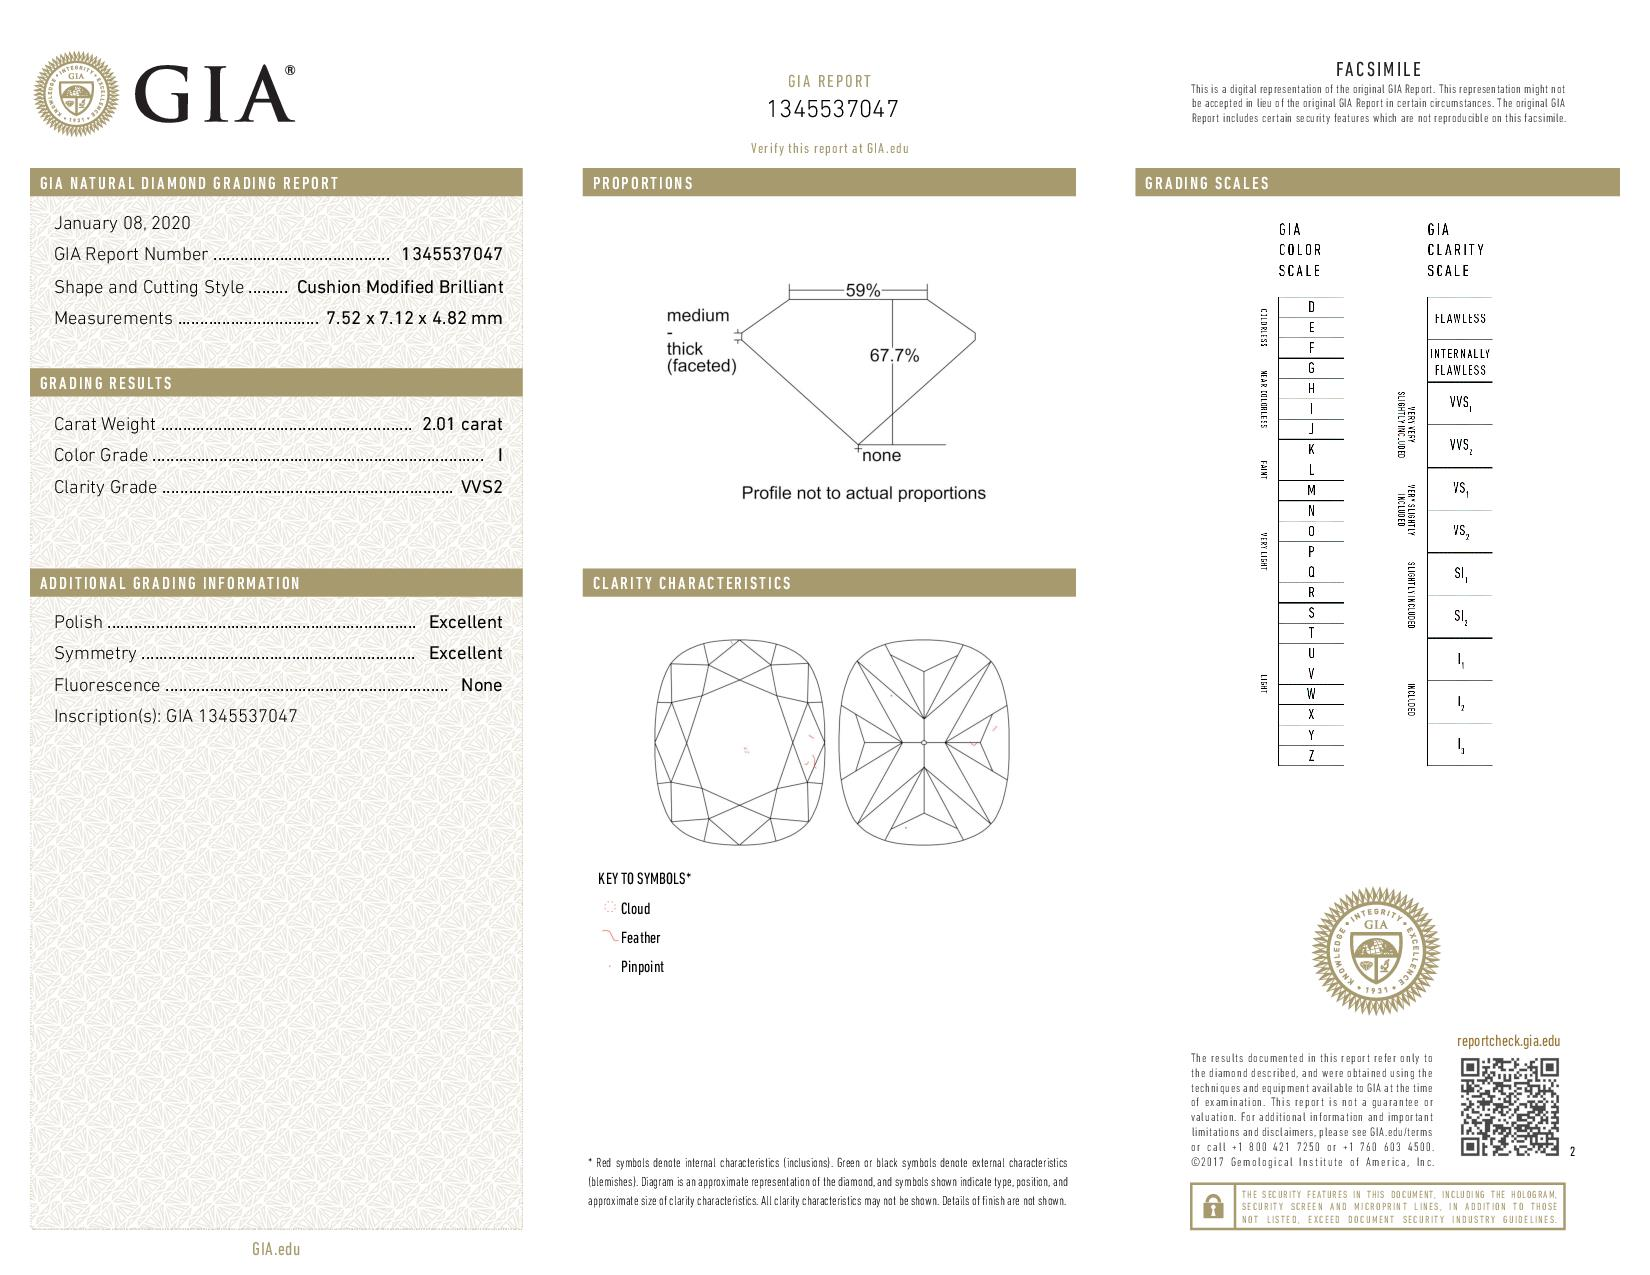 This is a 2.01 carat cushion shape, I color, VVS2 clarity natural diamond accompanied by a GIA grading report.